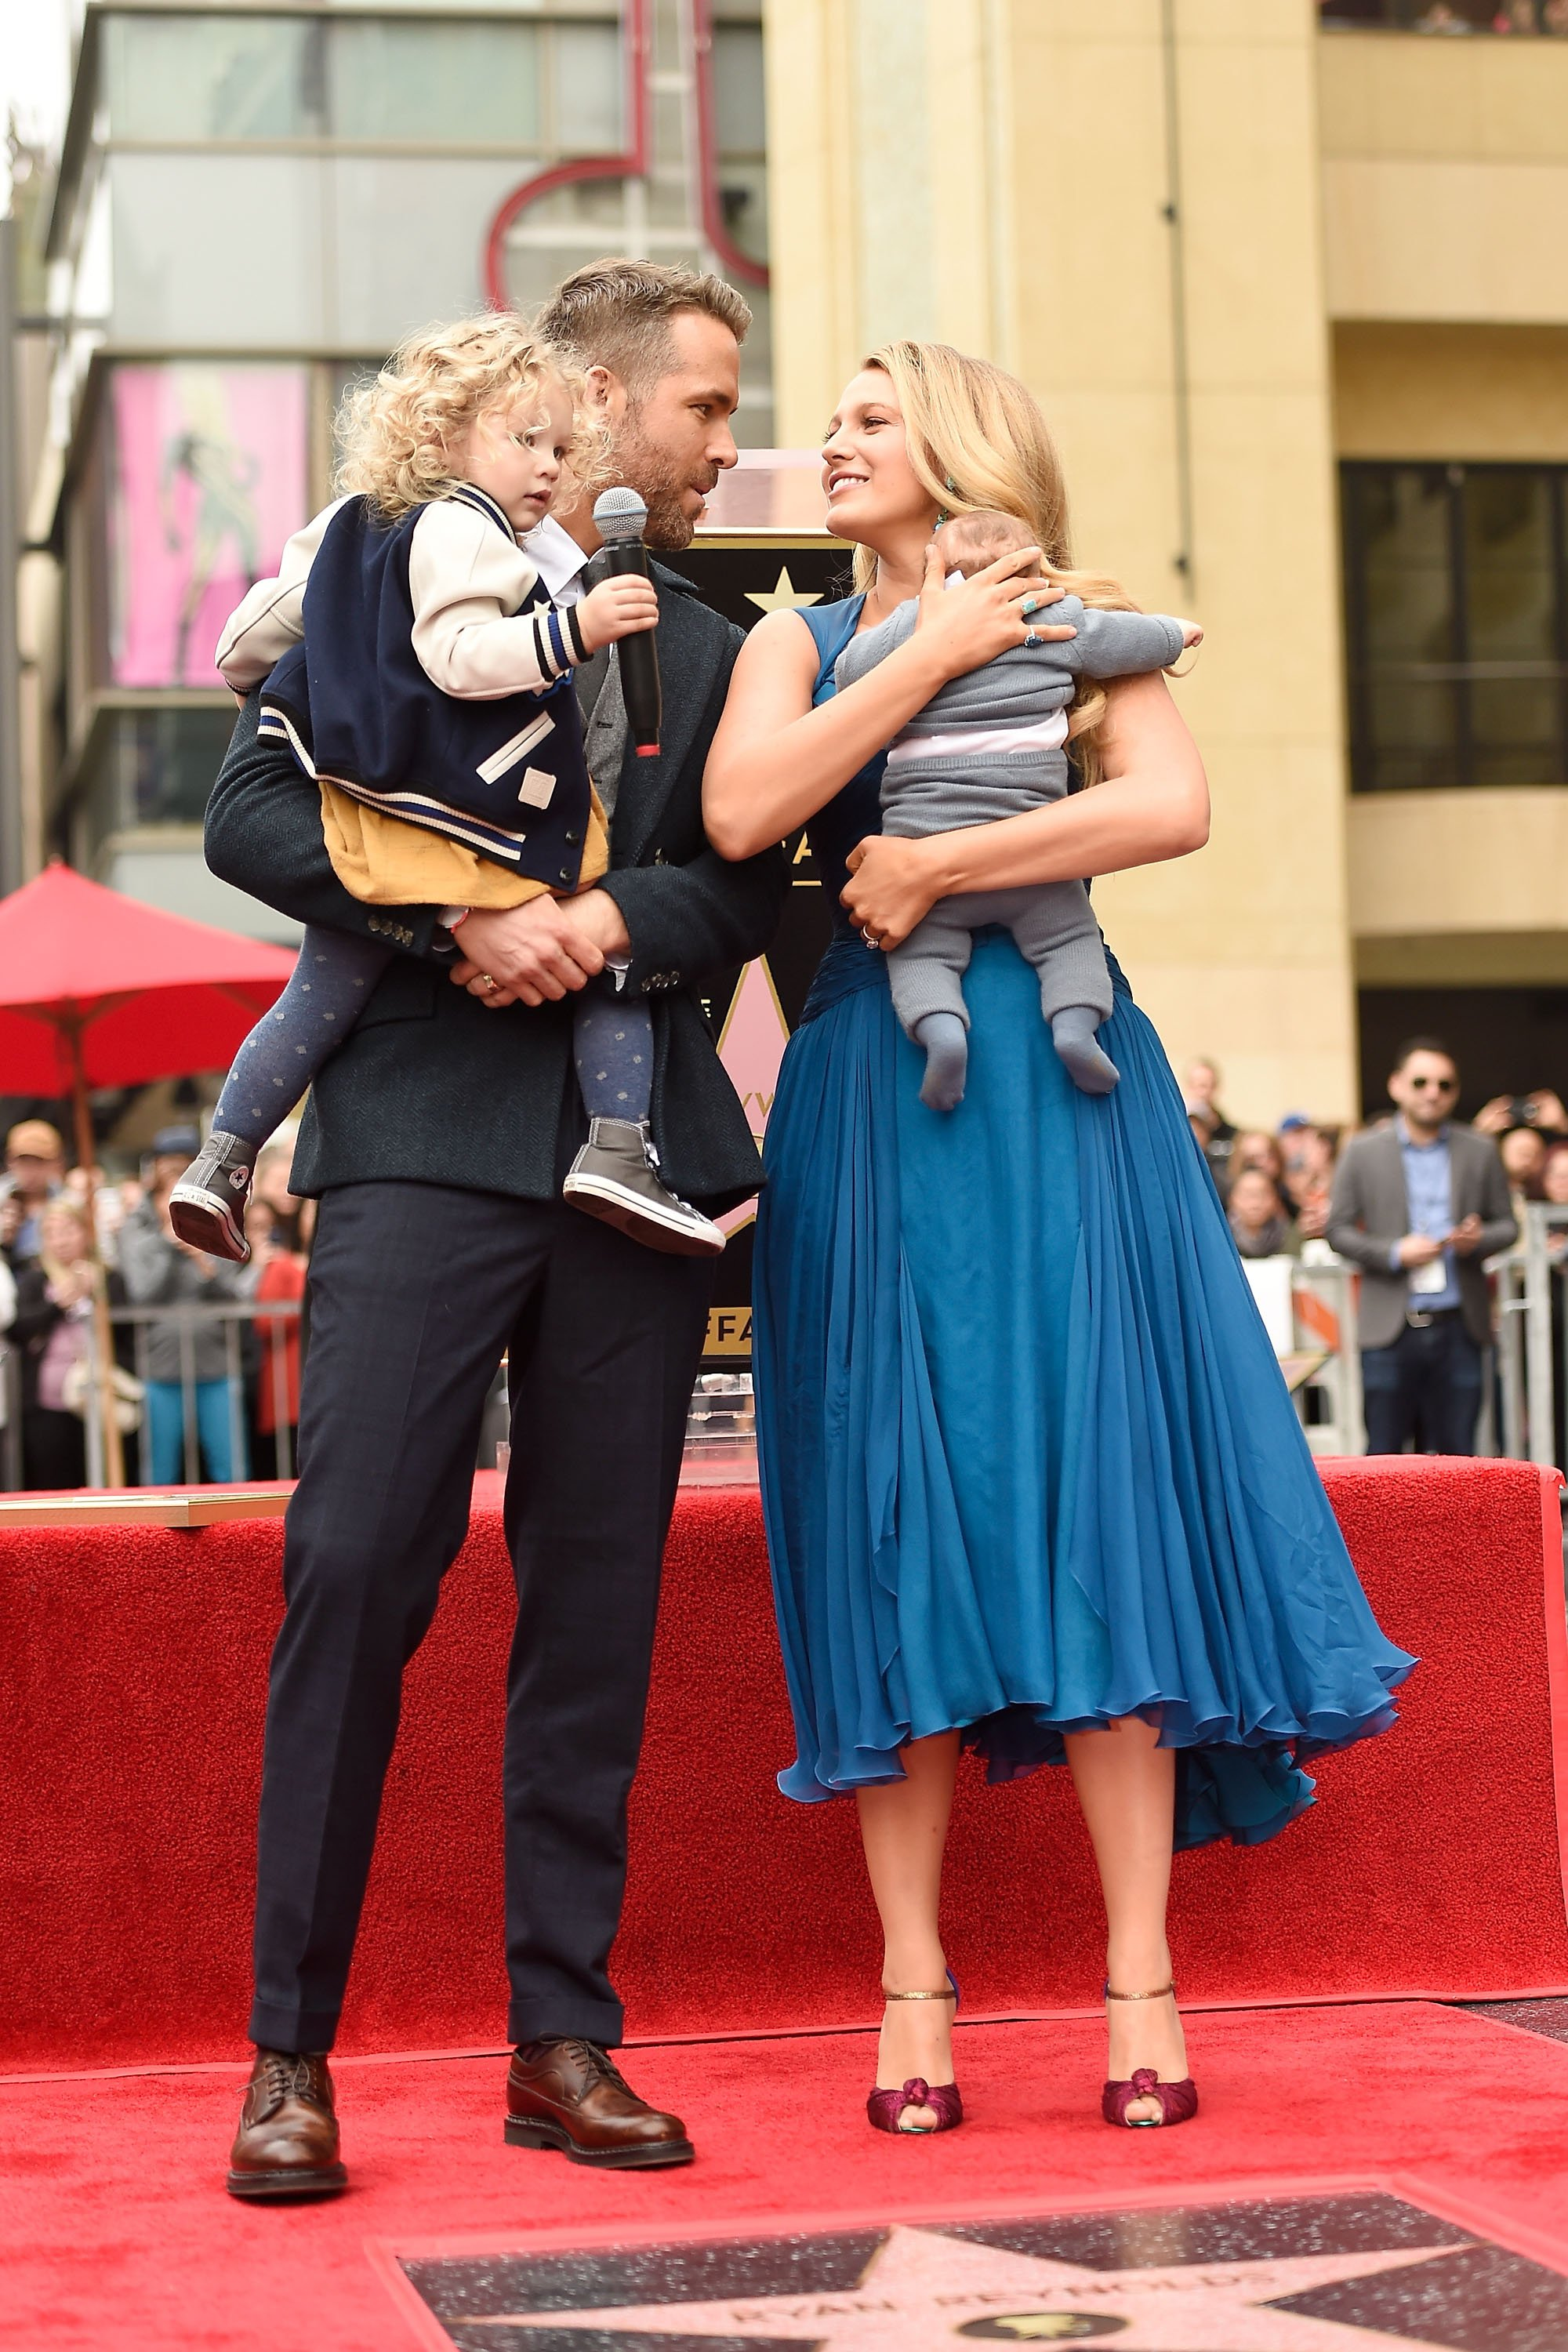 Image Credits: Getty Images / Matt Winkelmeyer | Actors Ryan Reynolds (L) and Blake Lively pose with their daughters as Ryan Reynolds is honored with star on the Hollywood Walk of Fame on December 15, 2016 in Hollywood, California.